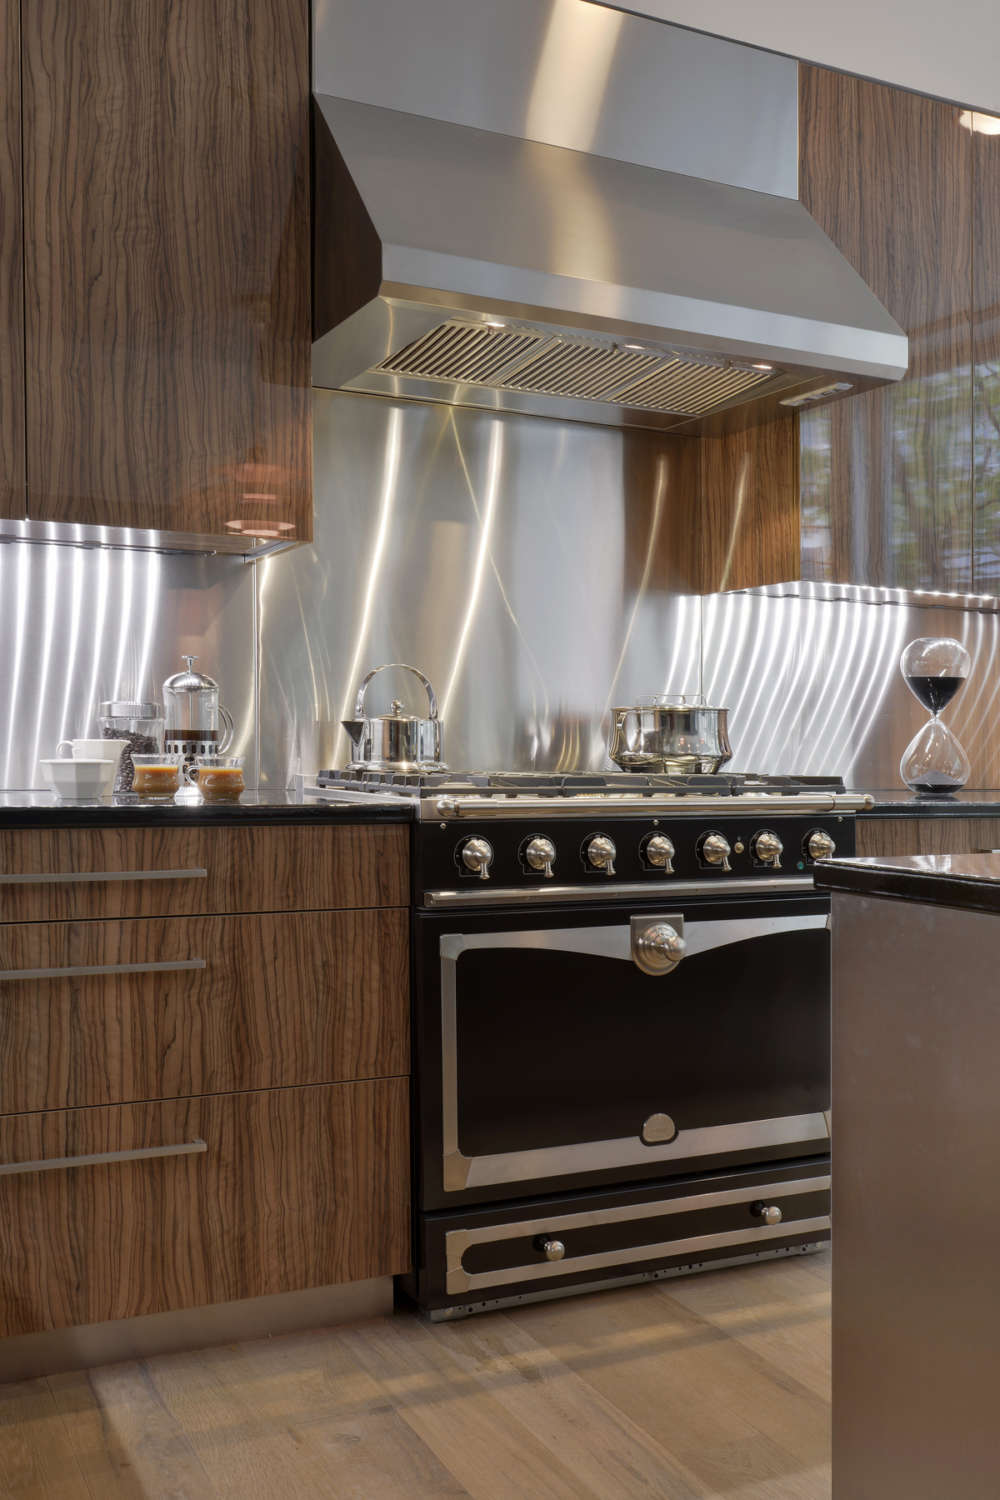 Hearth area of NYC loft kitchen features brushed alumasteel backsplash and flat panel, frameless fully custom Artcraft cabinetry in high gloss olivewood. Design by Randy O'Kane, CKD, of Bilotta Kitchens.